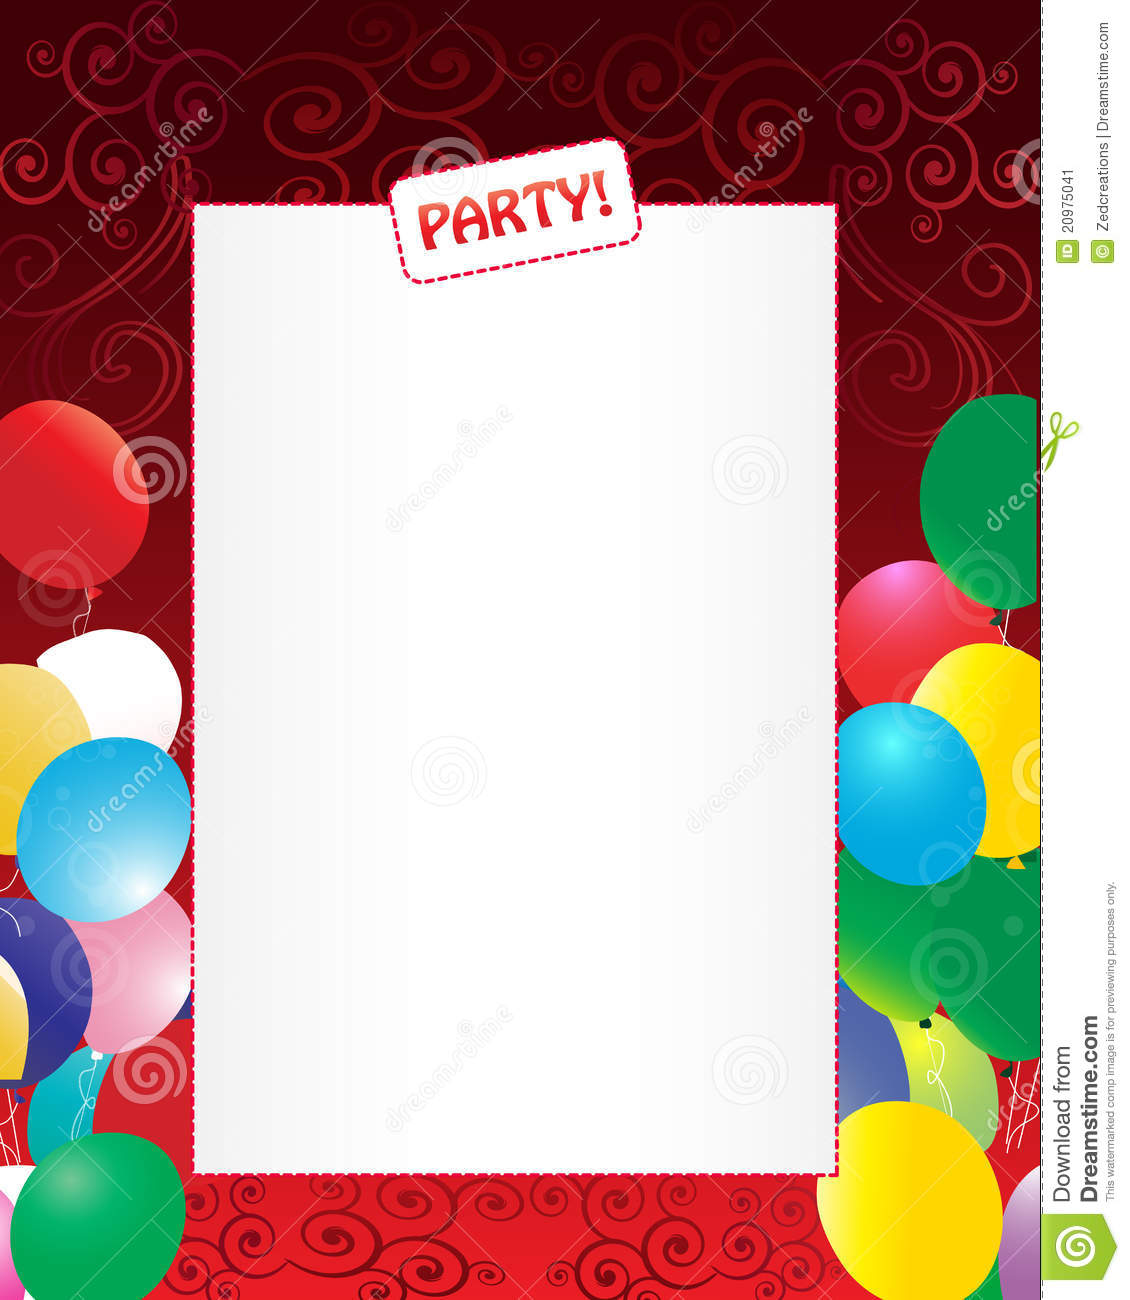 Soccer Invitations For Birthday Party for best invitations layout